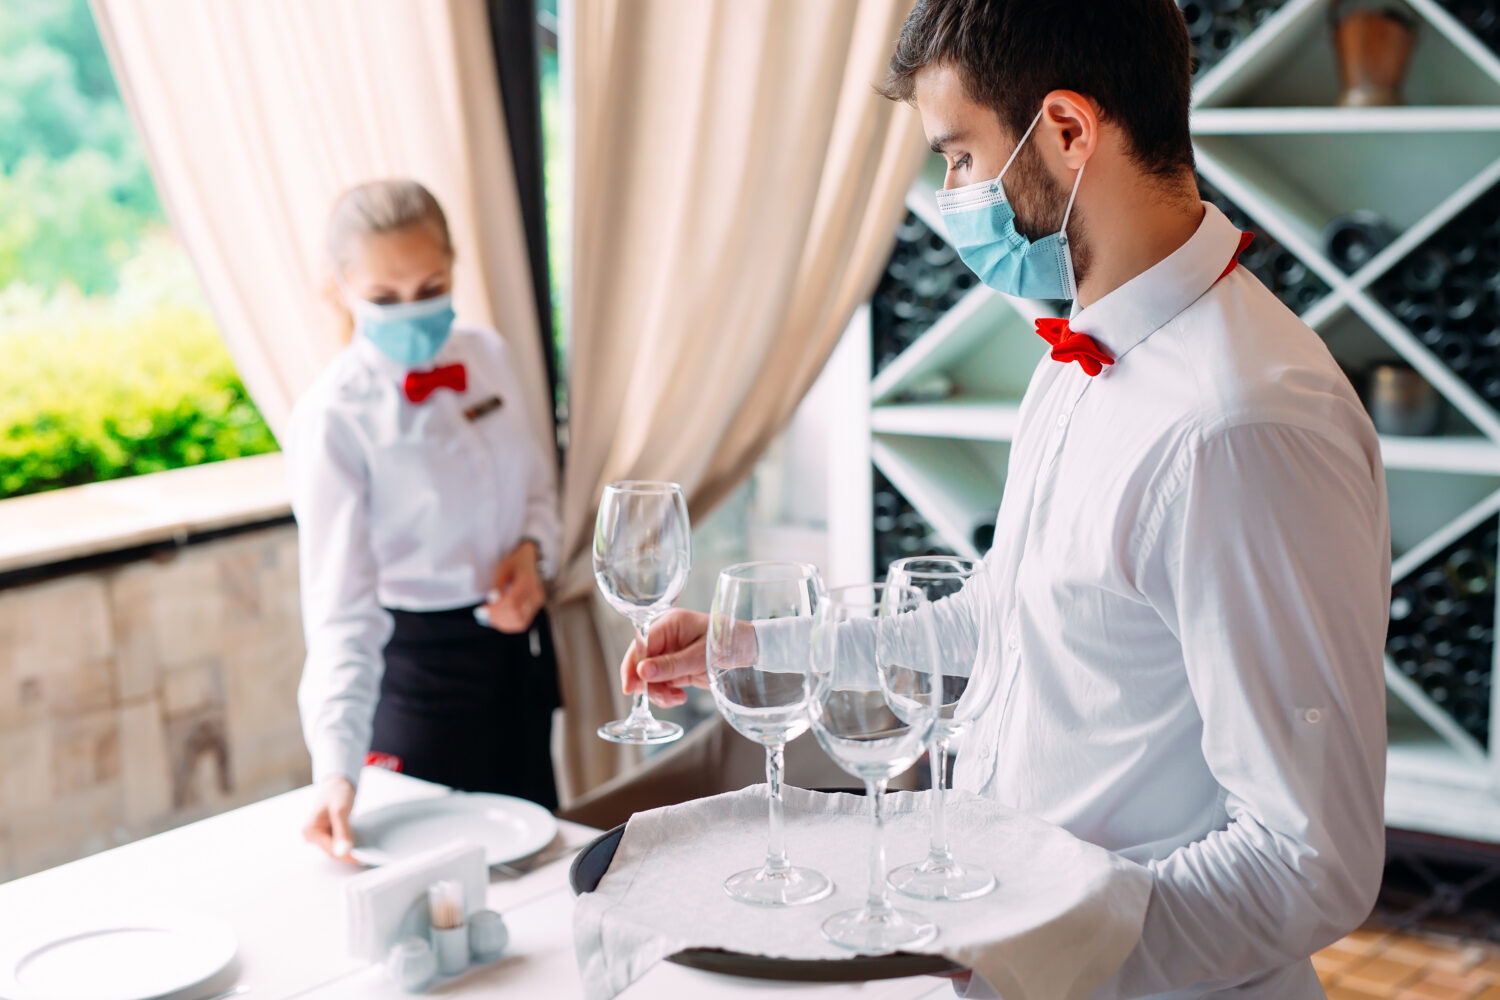 a waiter and his supervisor set a table with wine glasses